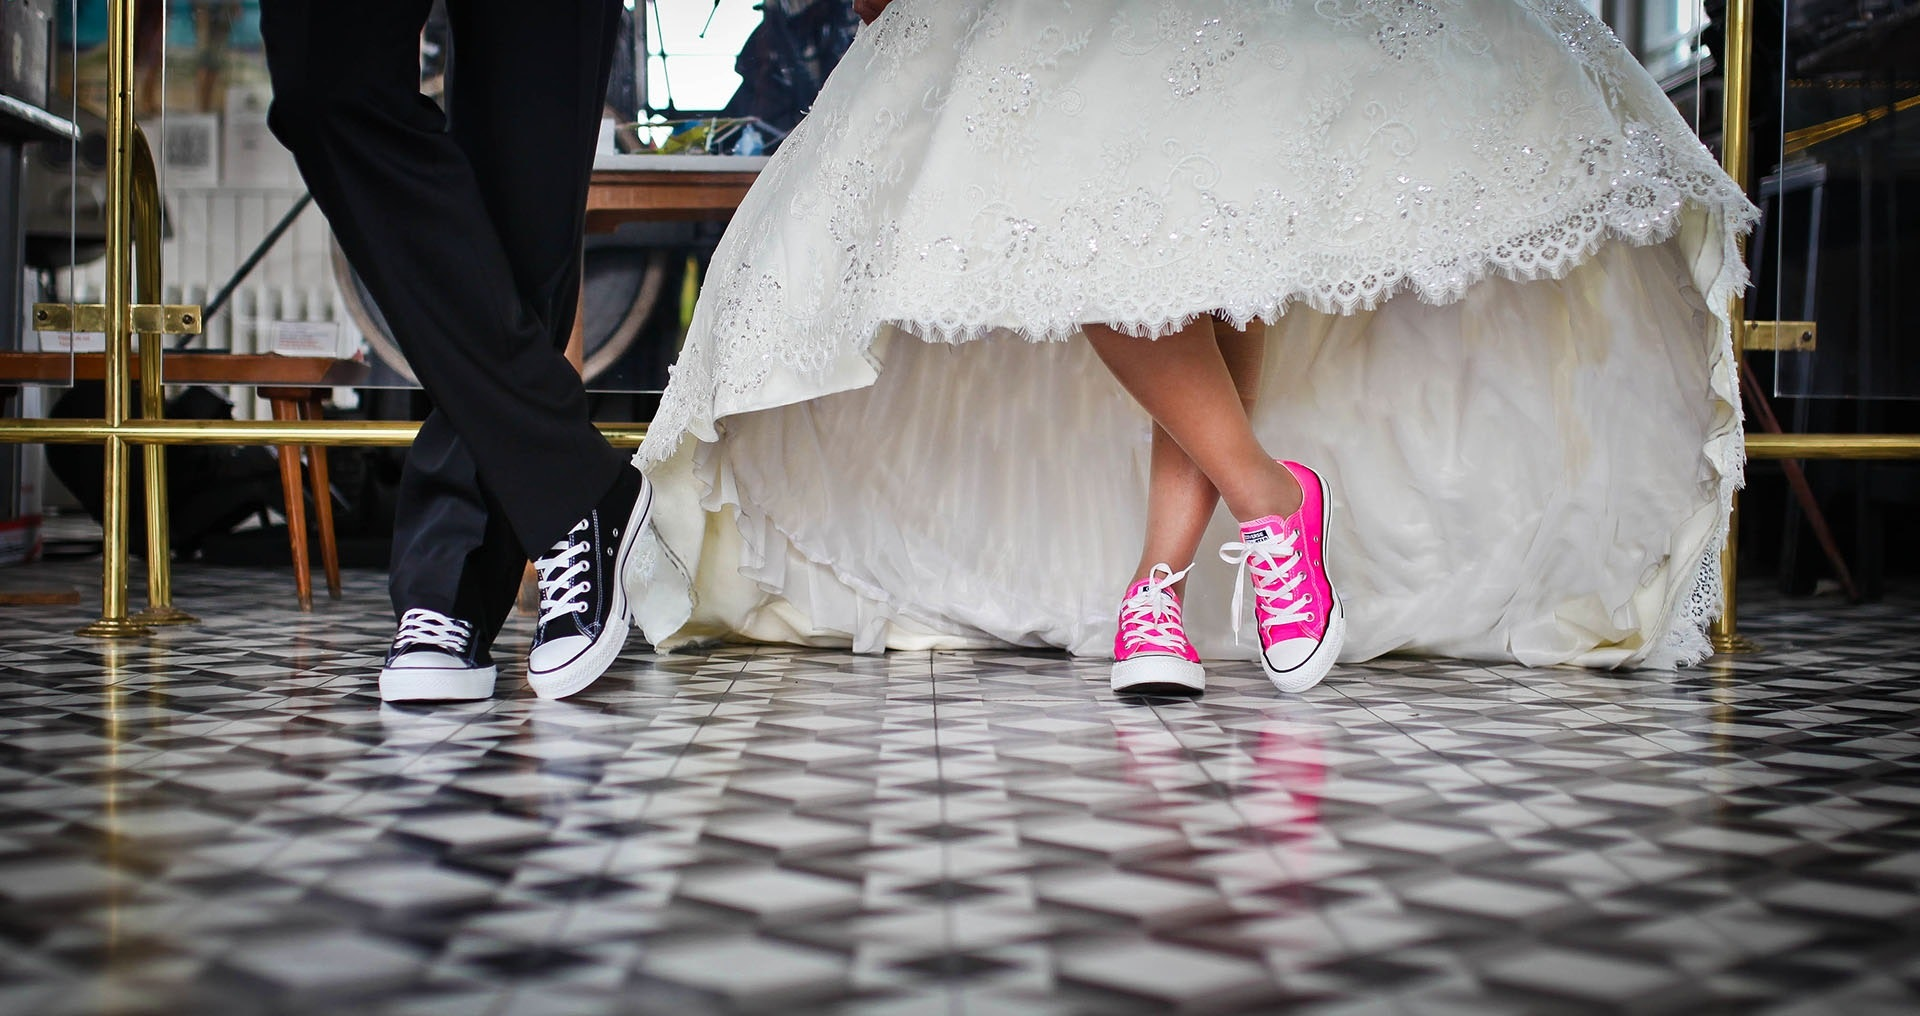 Woman wearing pink and white low top shoes dancing beside man photo